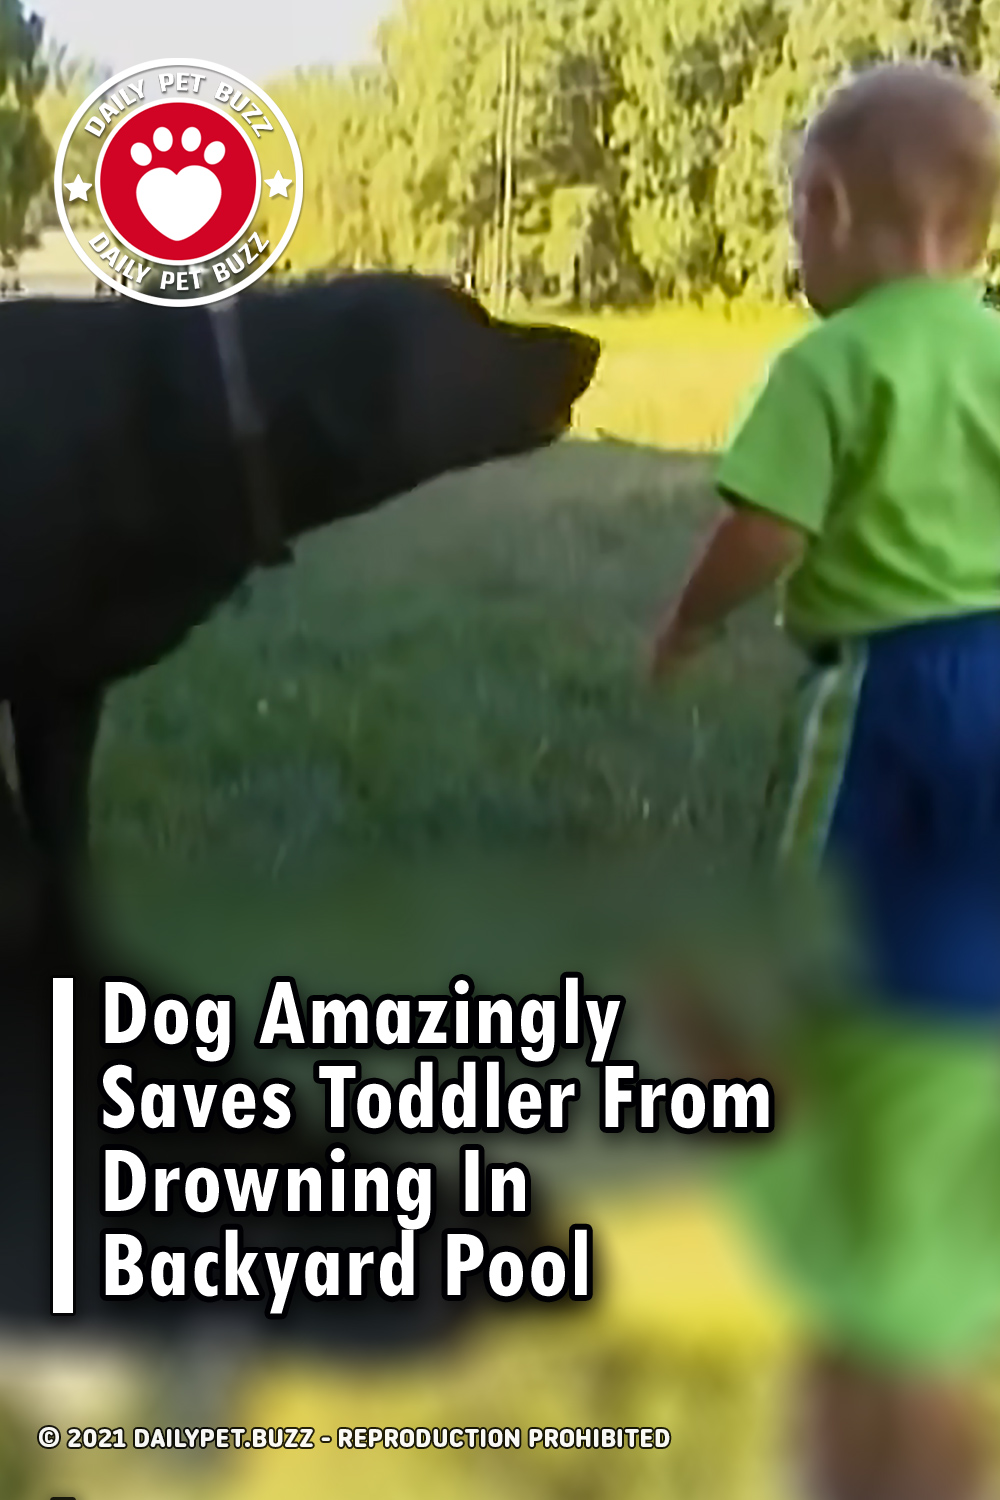 Dog Amazingly Saves Toddler From Drowning In Backyard Pool